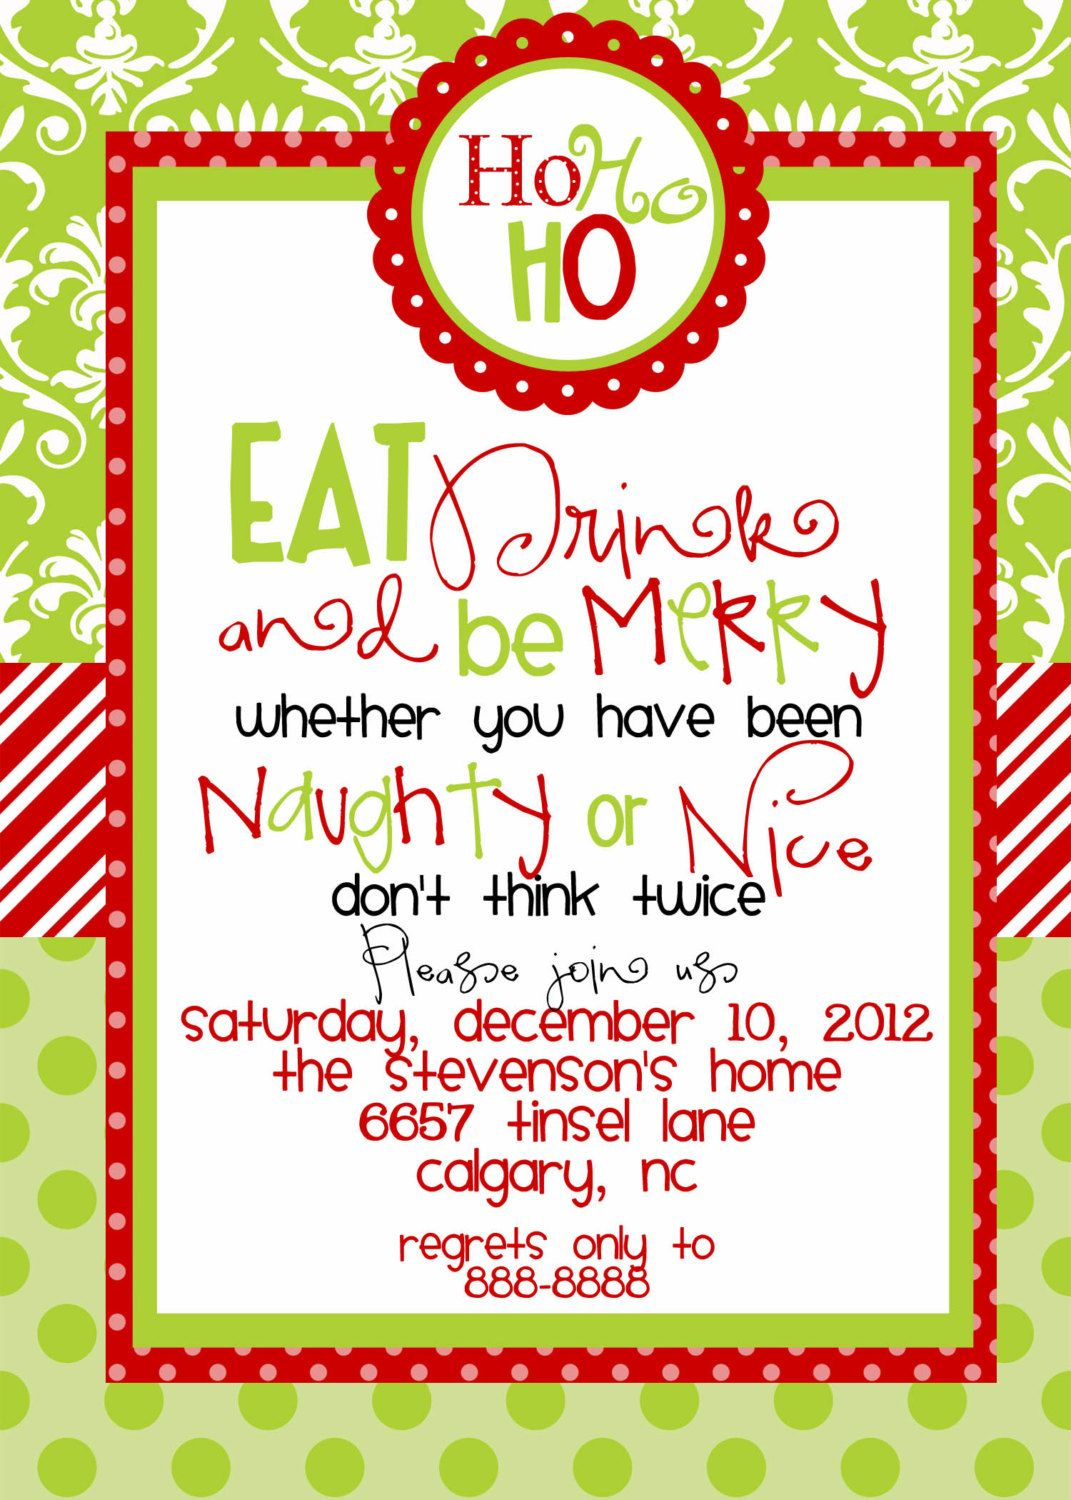 Jebo Fishing | Jebo Fishing | Pinterest | Christmas Party - Free Printable Religious Christmas Invitations